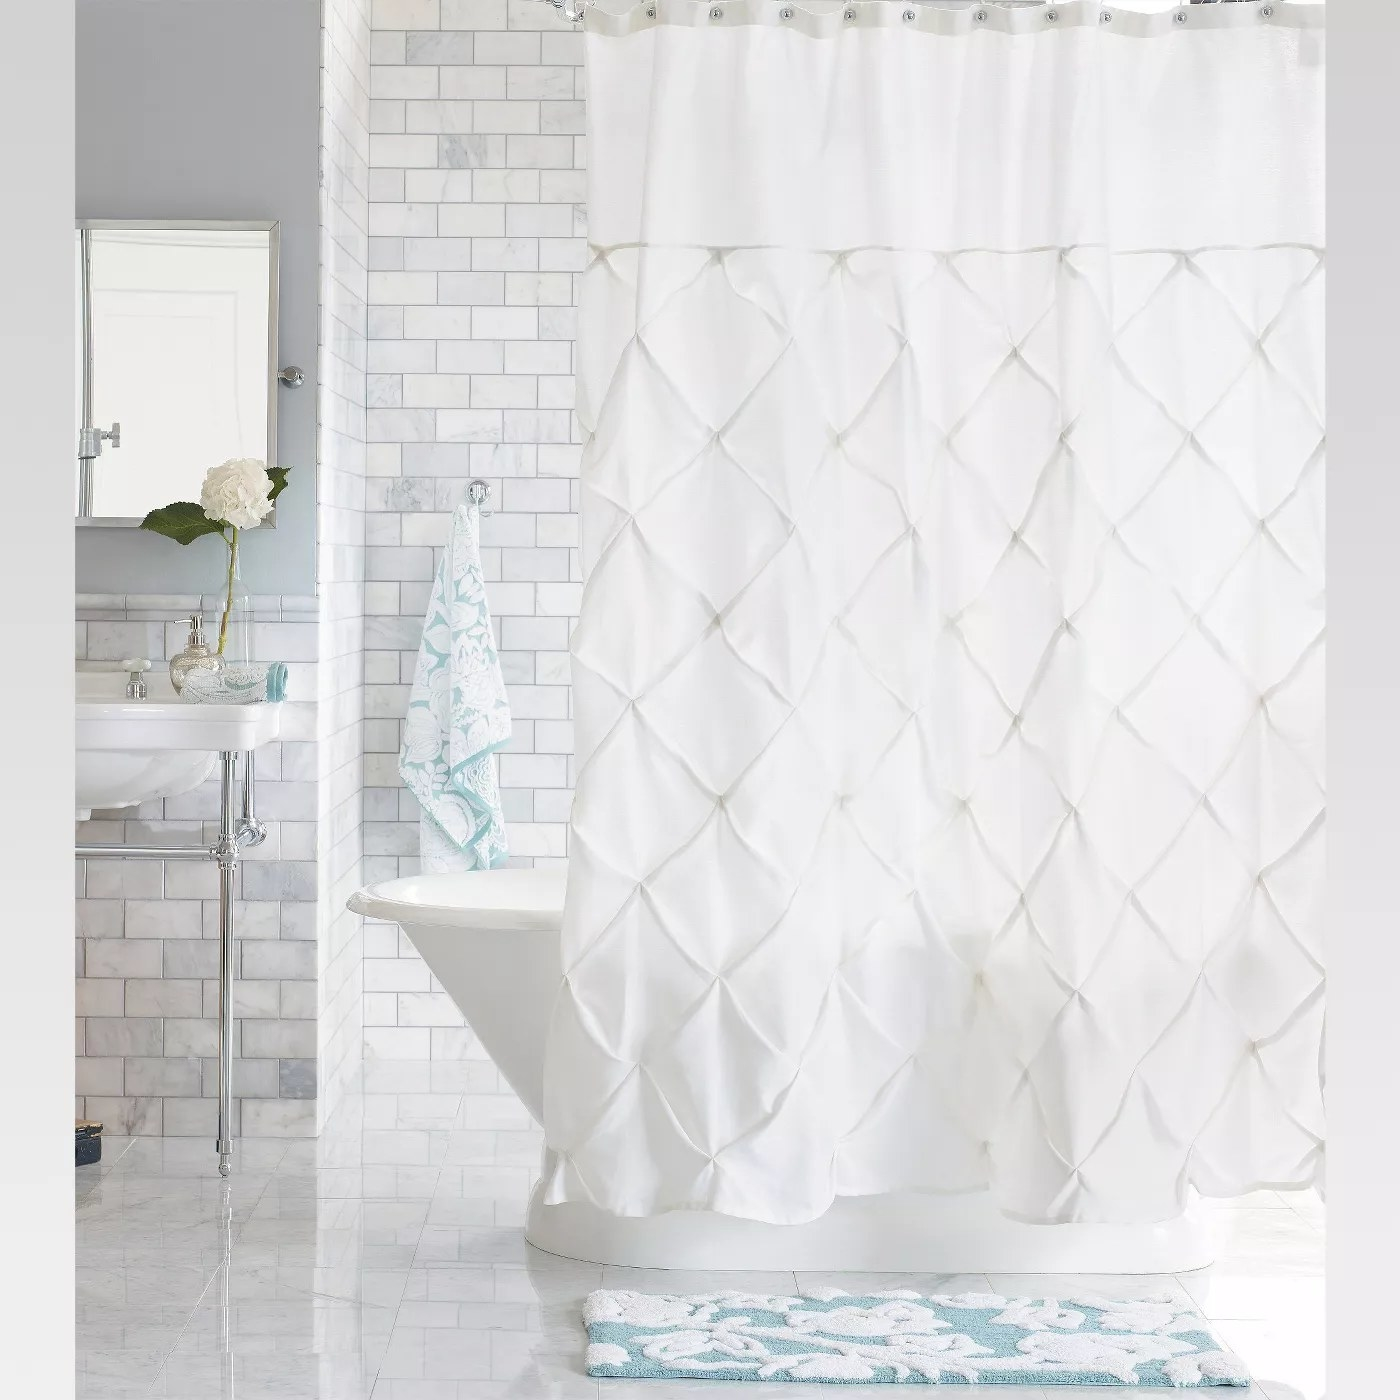 The white pleated shower curtain